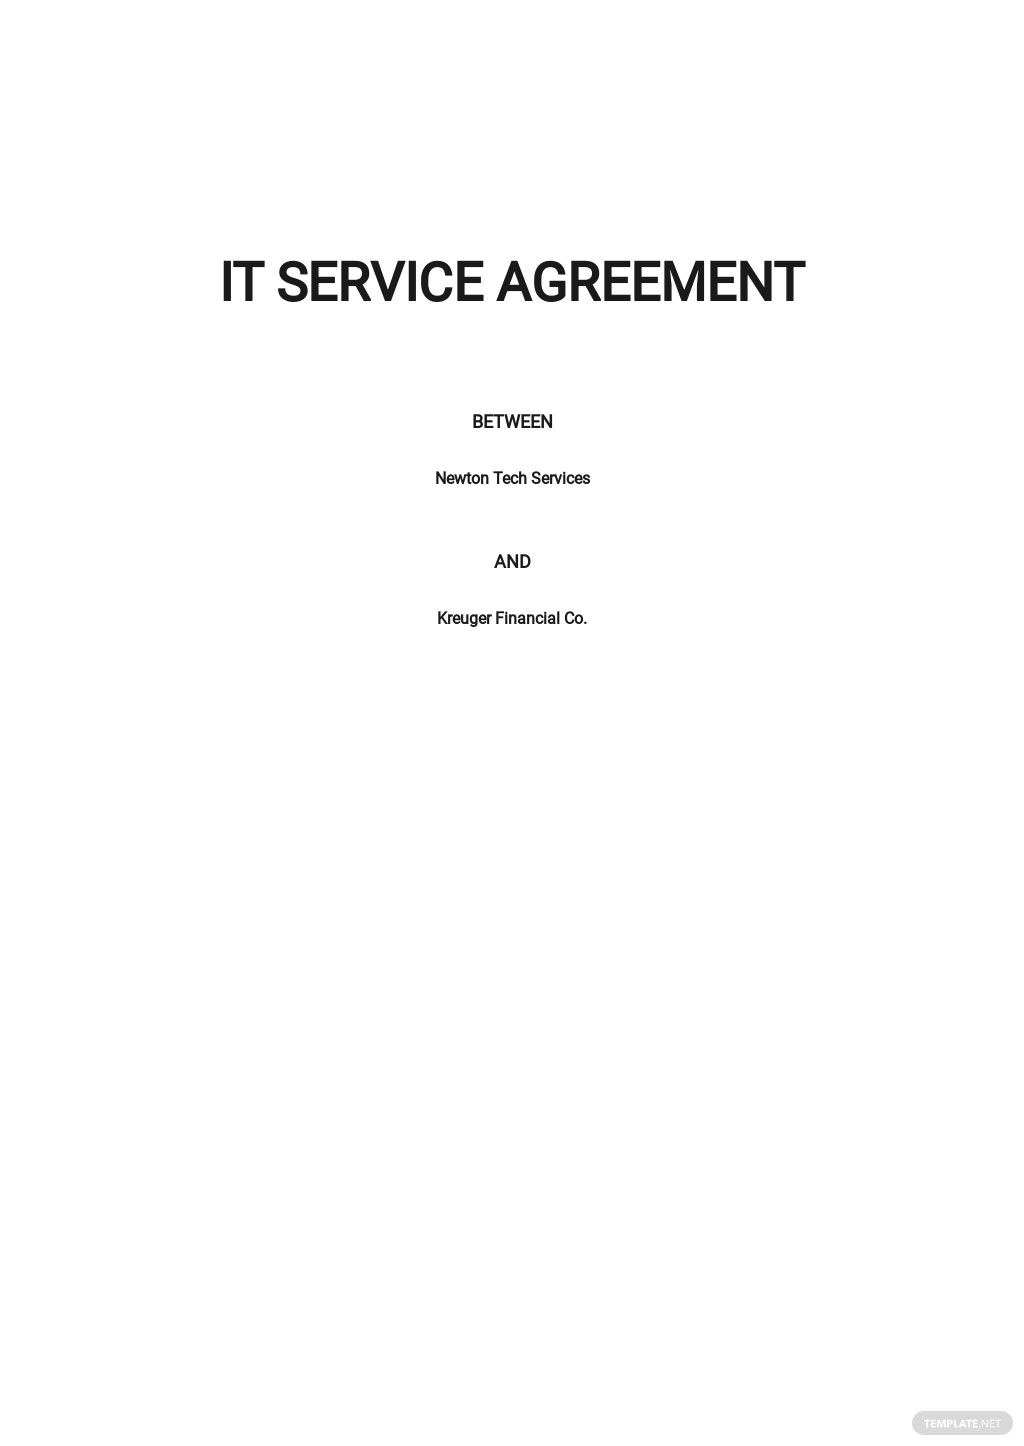 Simple IT Service Agreement Template